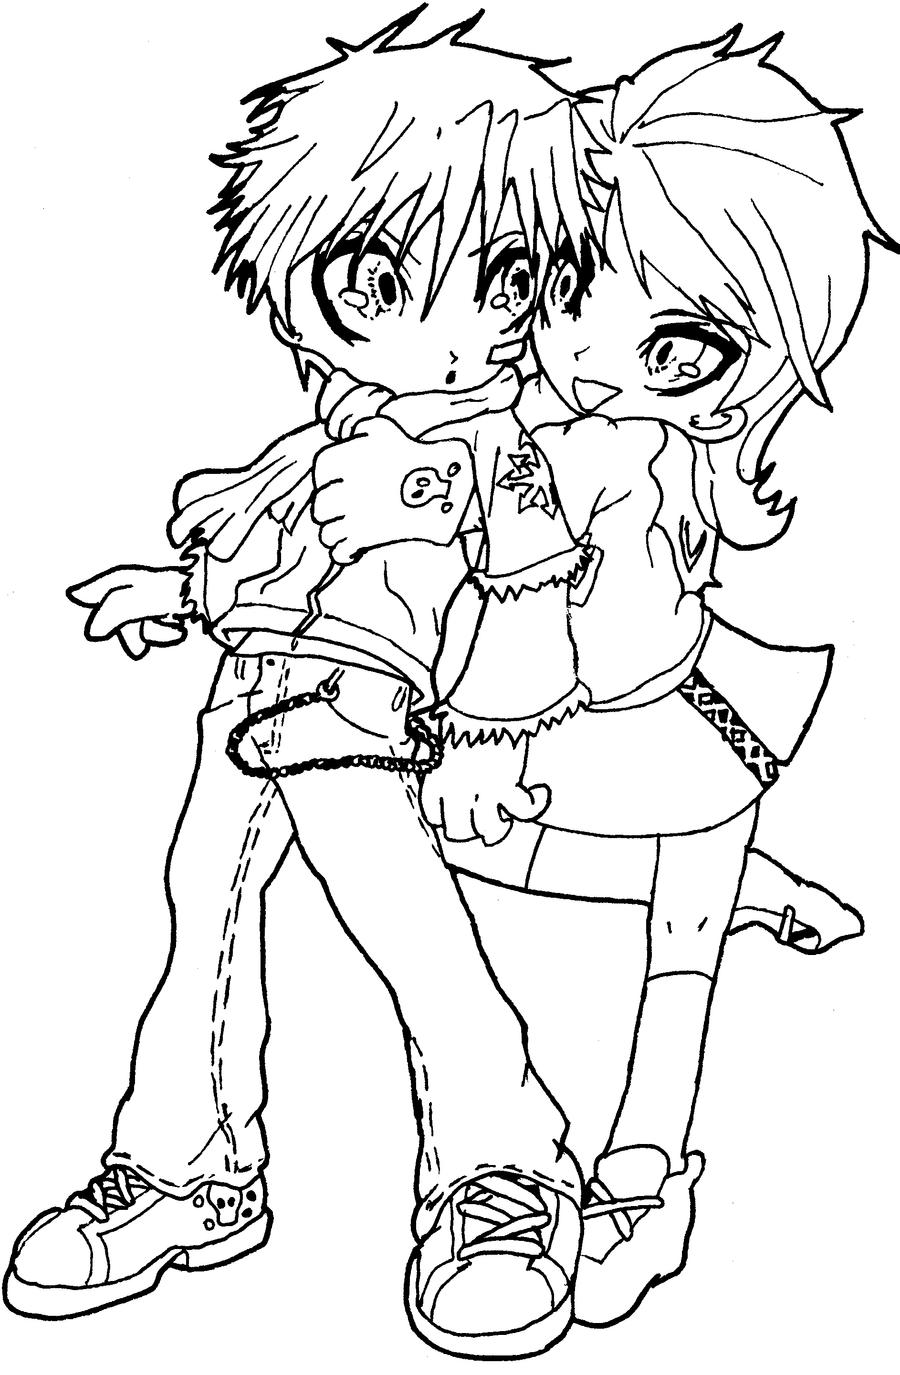 chibi couple coloring pages chibi couple by ed sama on deviantart coloring chibi pages couple